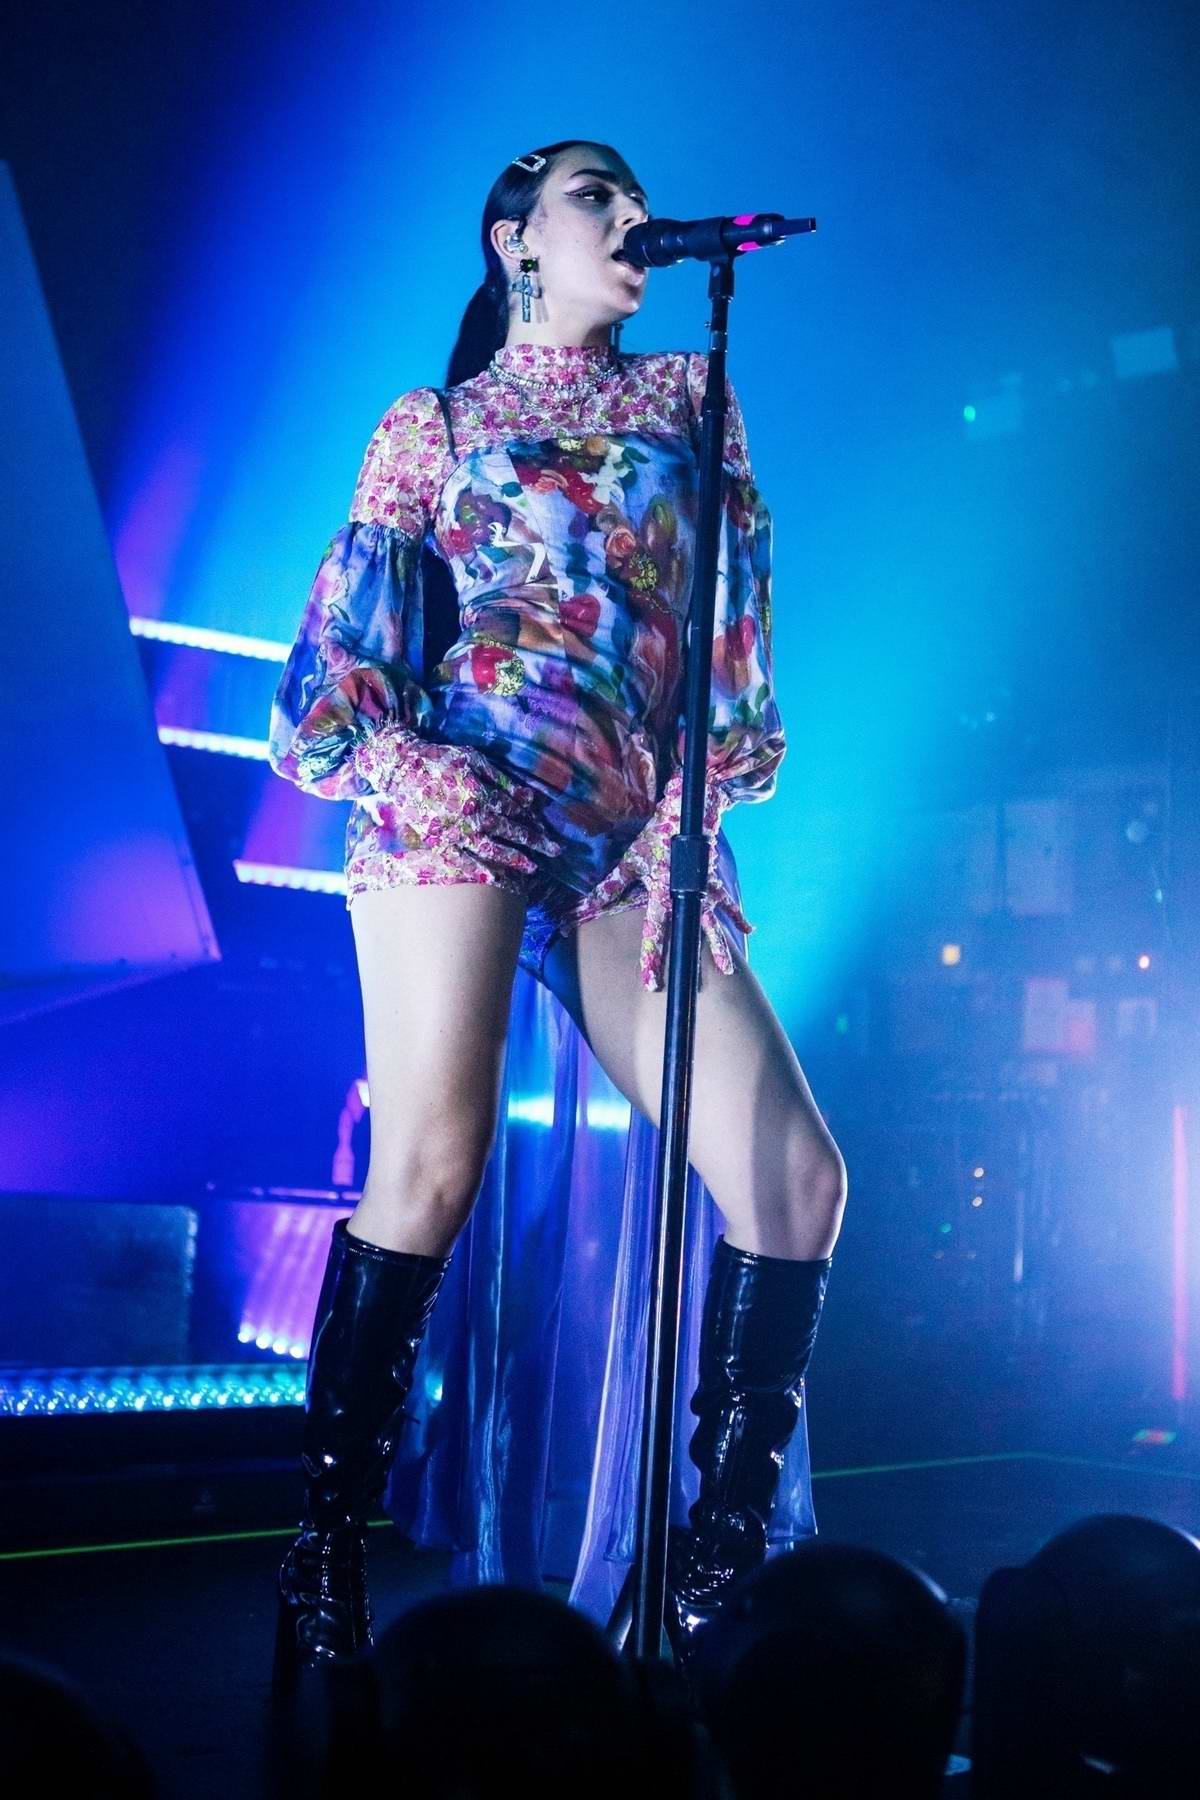 Charli XCX performs on stage at The O2 Institute Birmingham, UK